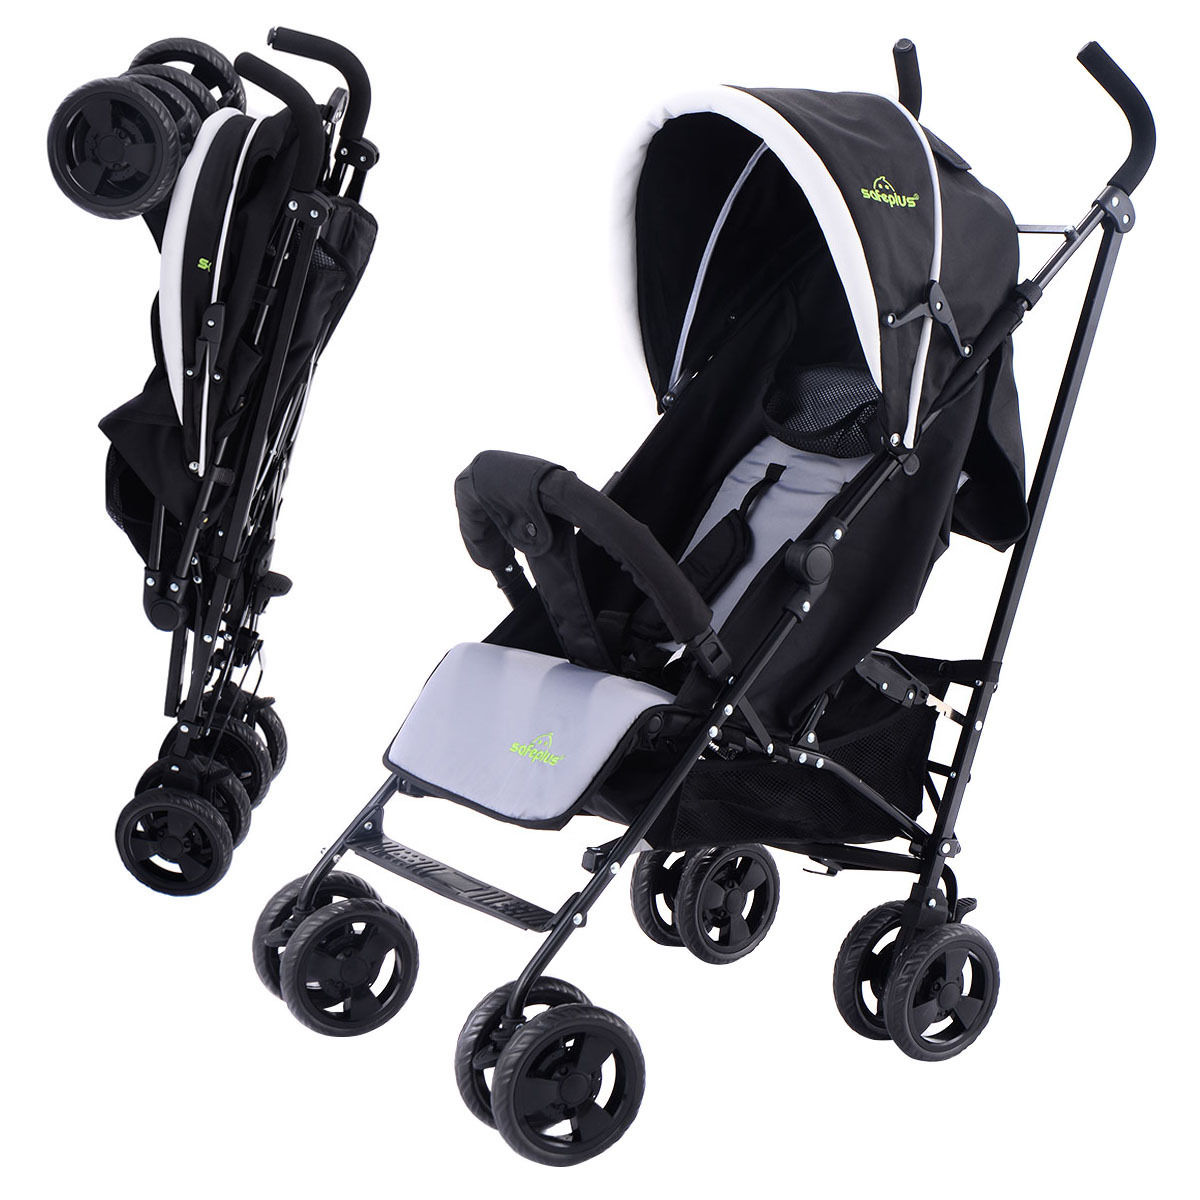 Costway Foldable Baby Stroller Buggy Kids Jogger Travel Infant Pushchair Lightweight